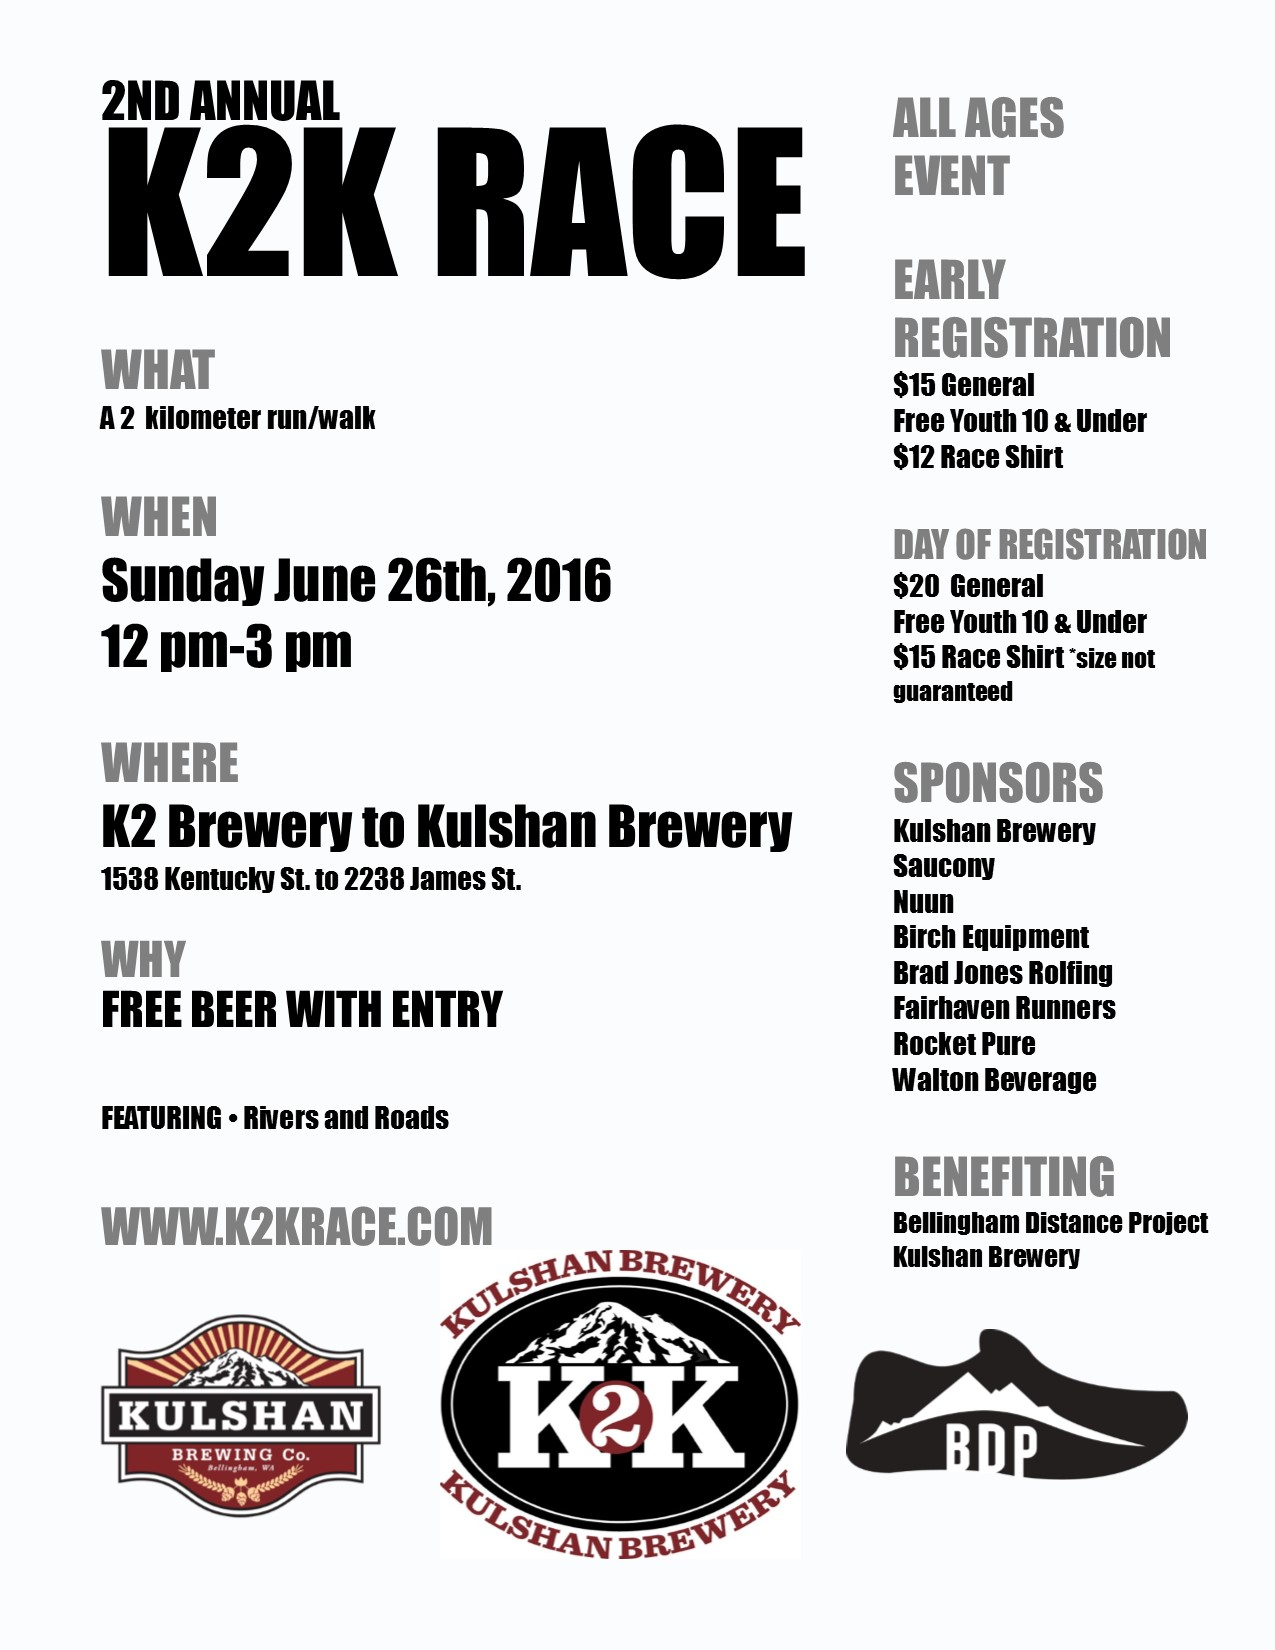 2nd Annual K2K Race Coming this Weekend!